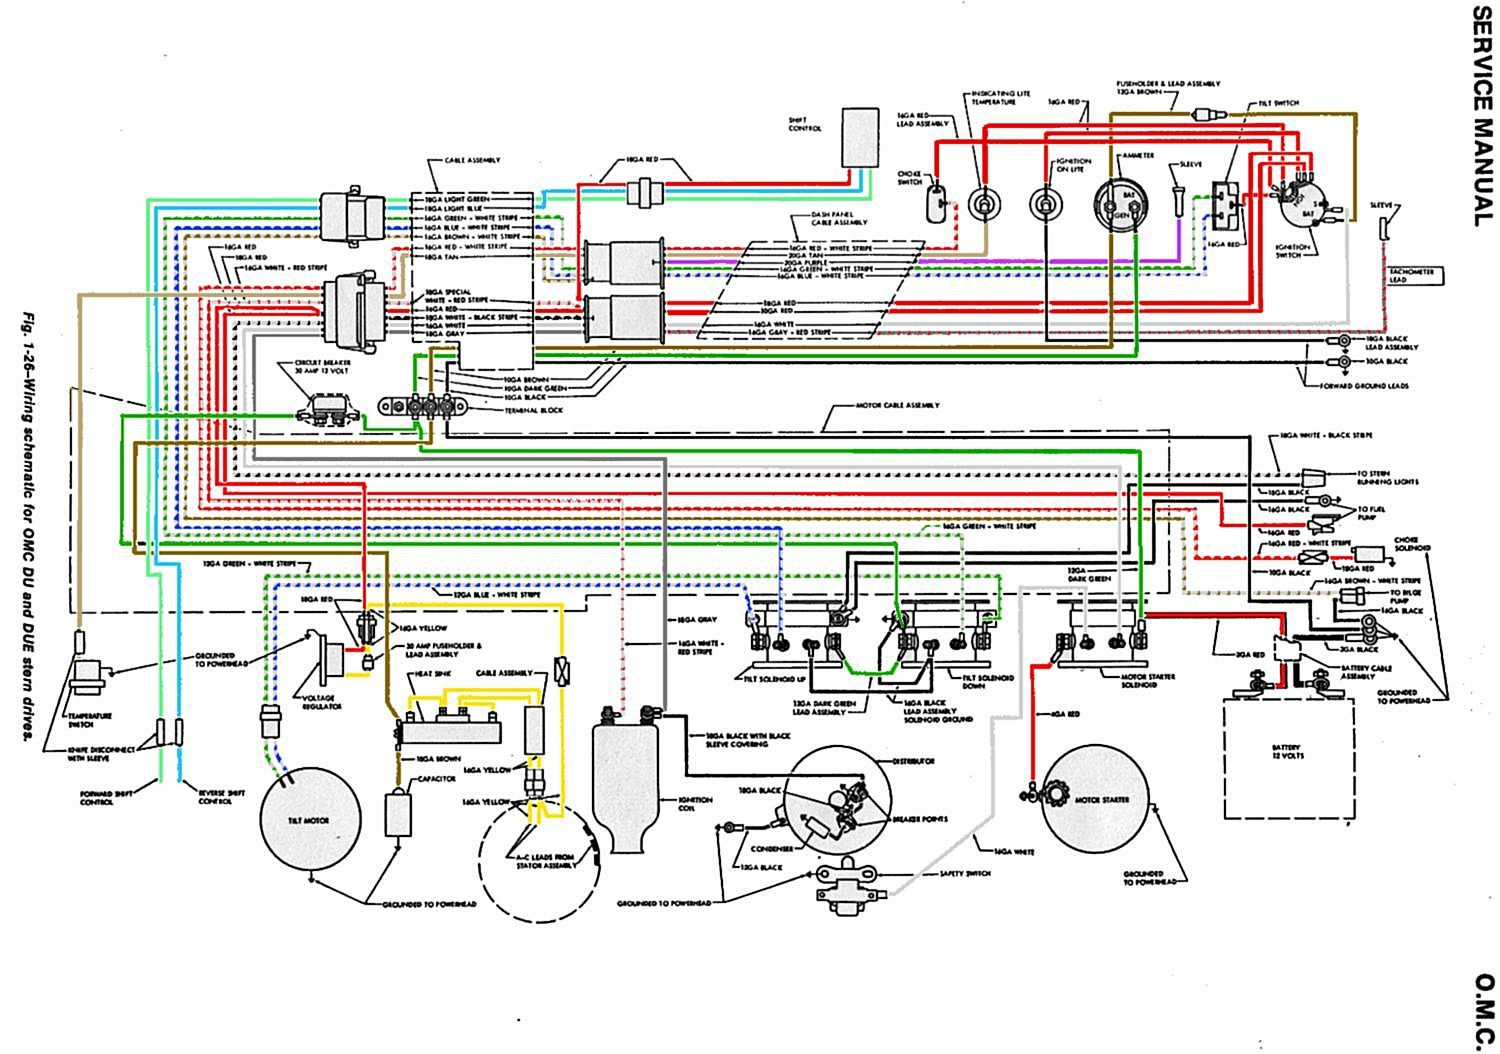 65 68_OMC_Wiring_Schematic?resize=665%2C467 trailer wiring diagram for 4 way, 5 way, 6 way and 7 way circuits triton boat trailer wiring diagram at beritabola.co